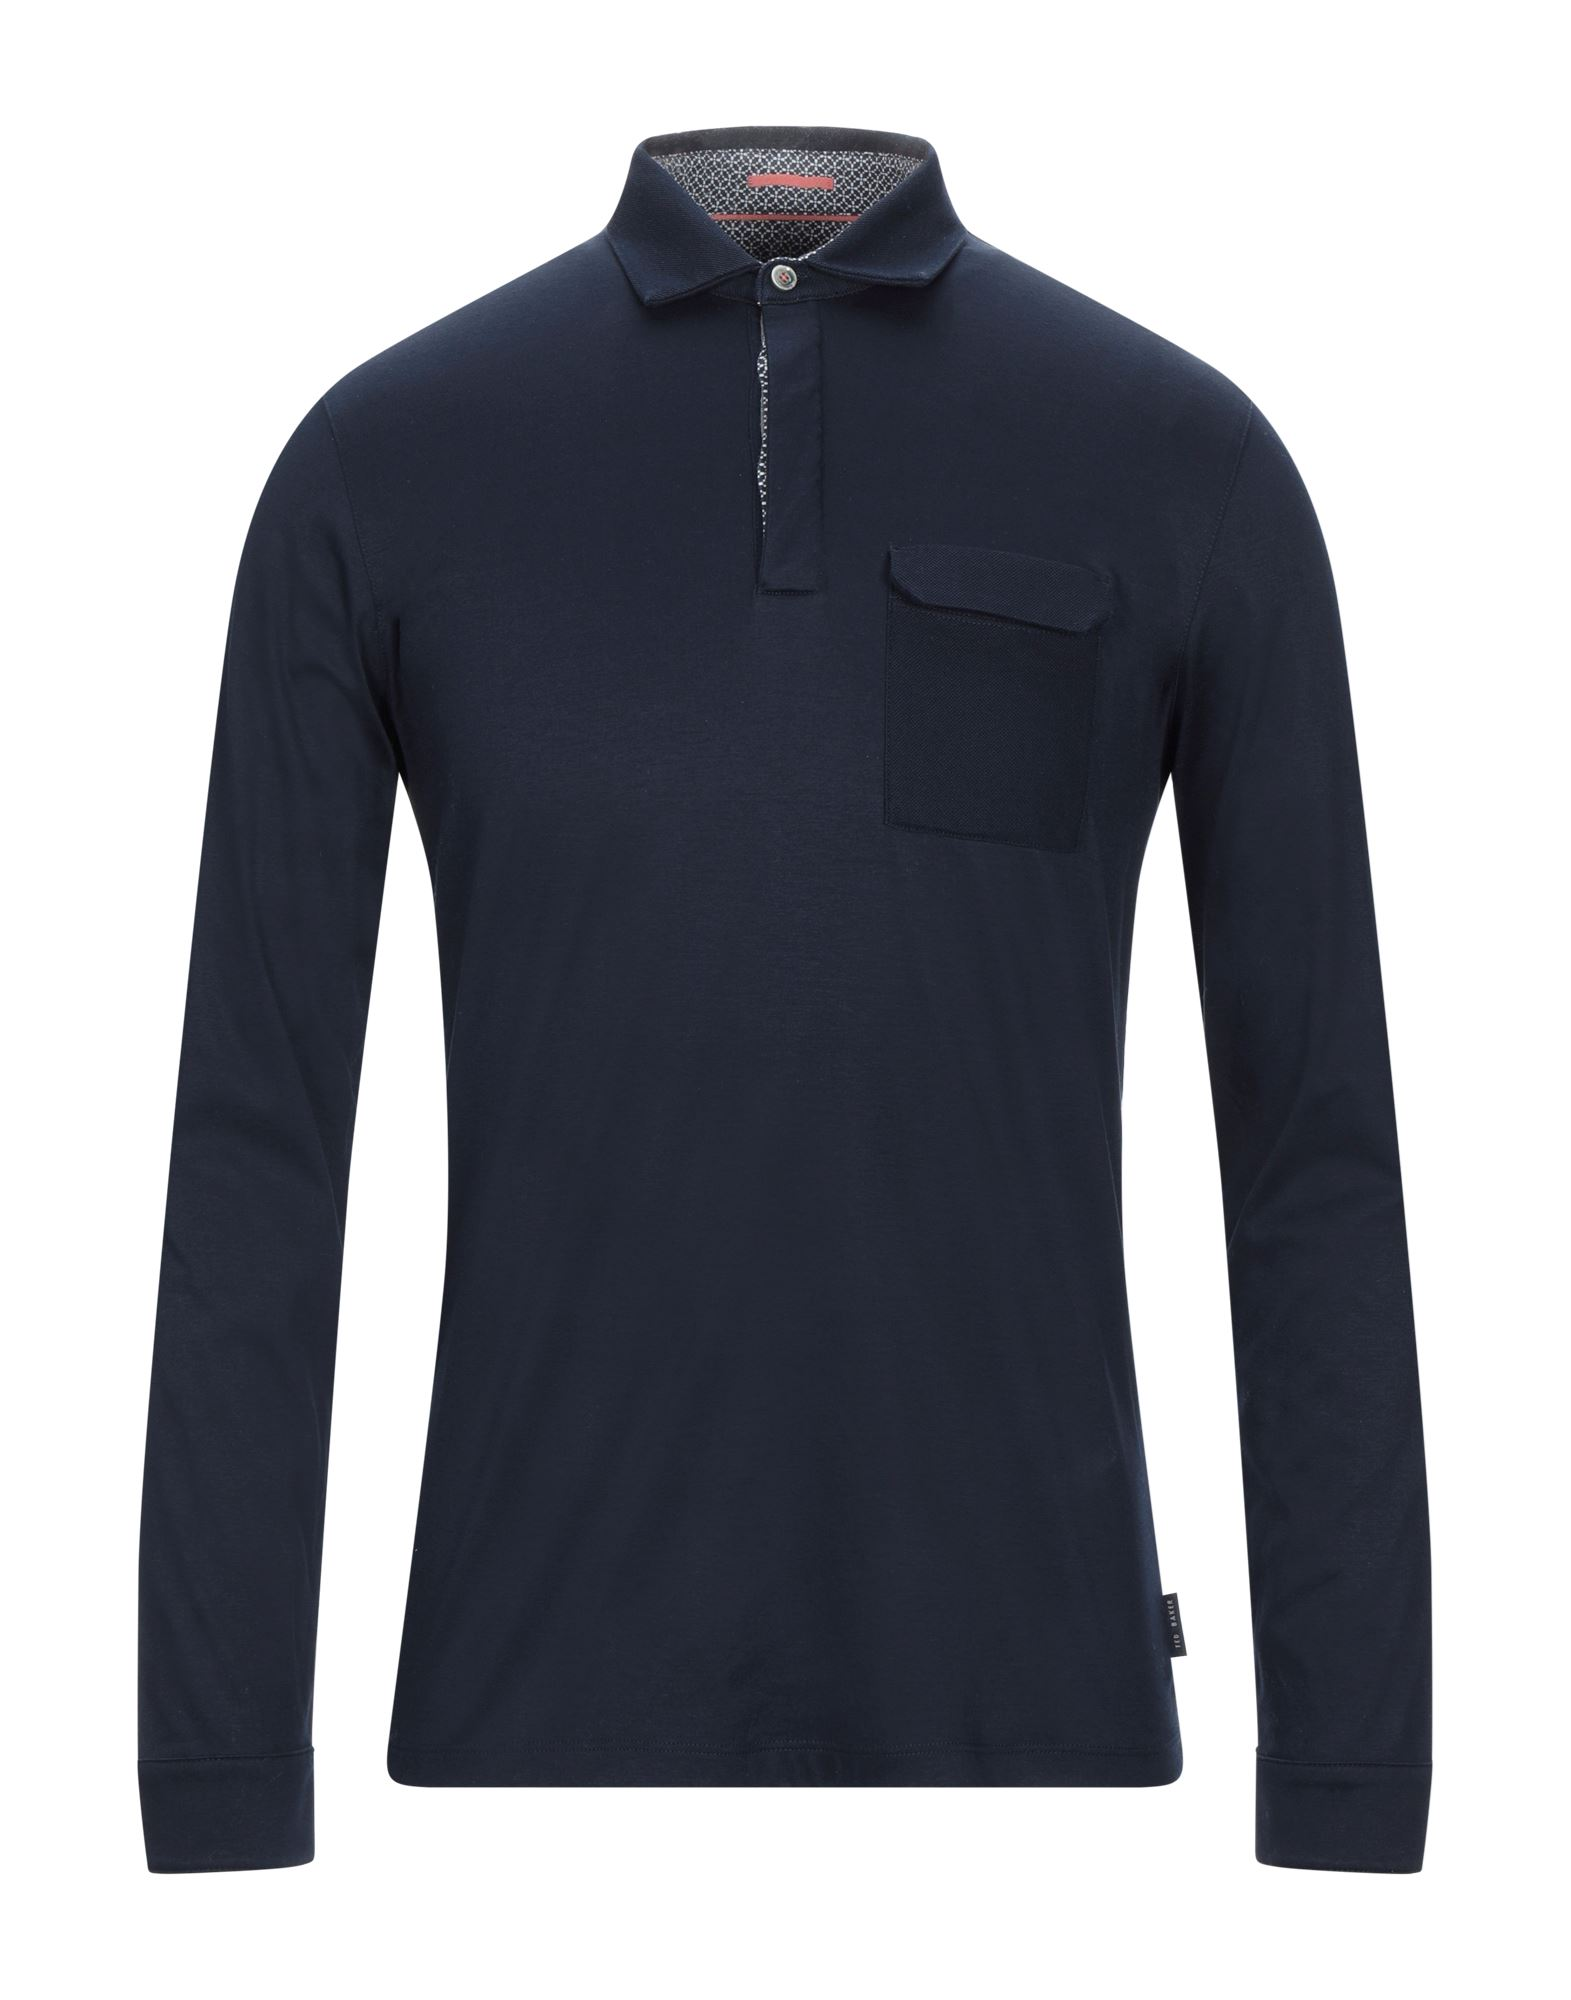 TED BAKER Polo shirts - Item 12536906